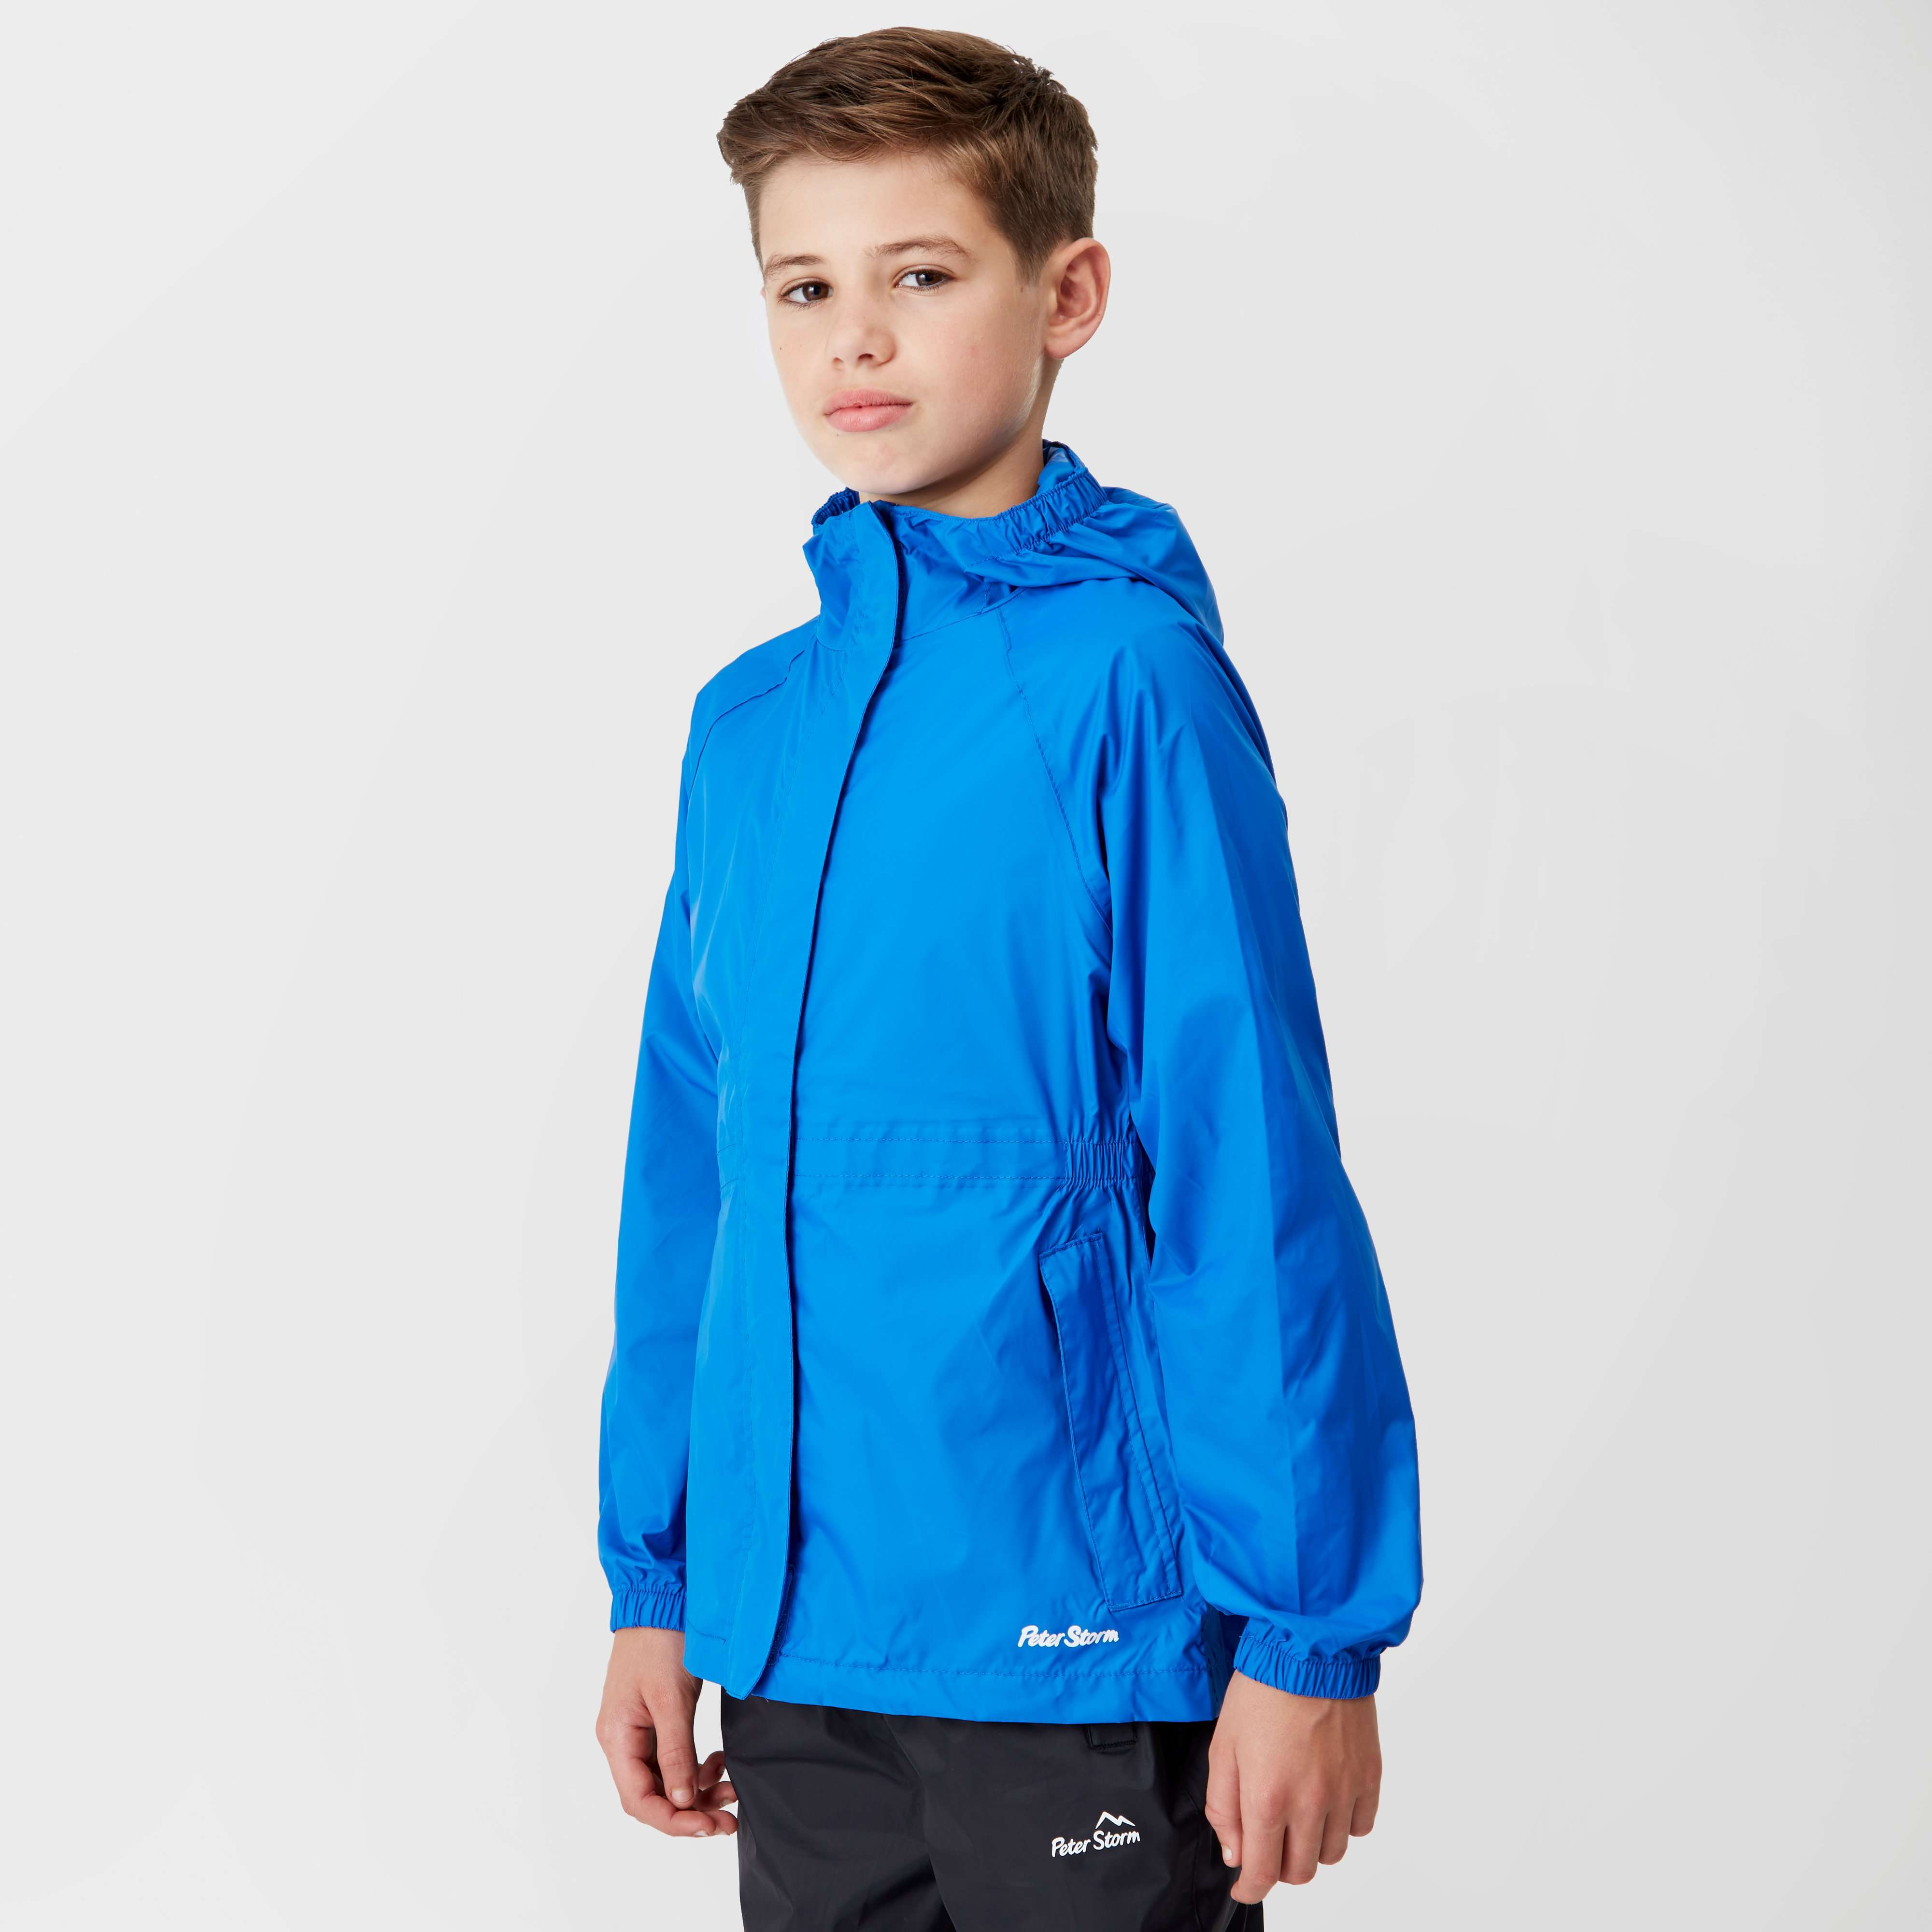 PETER STORM Kids' Parka-in-a-Pack